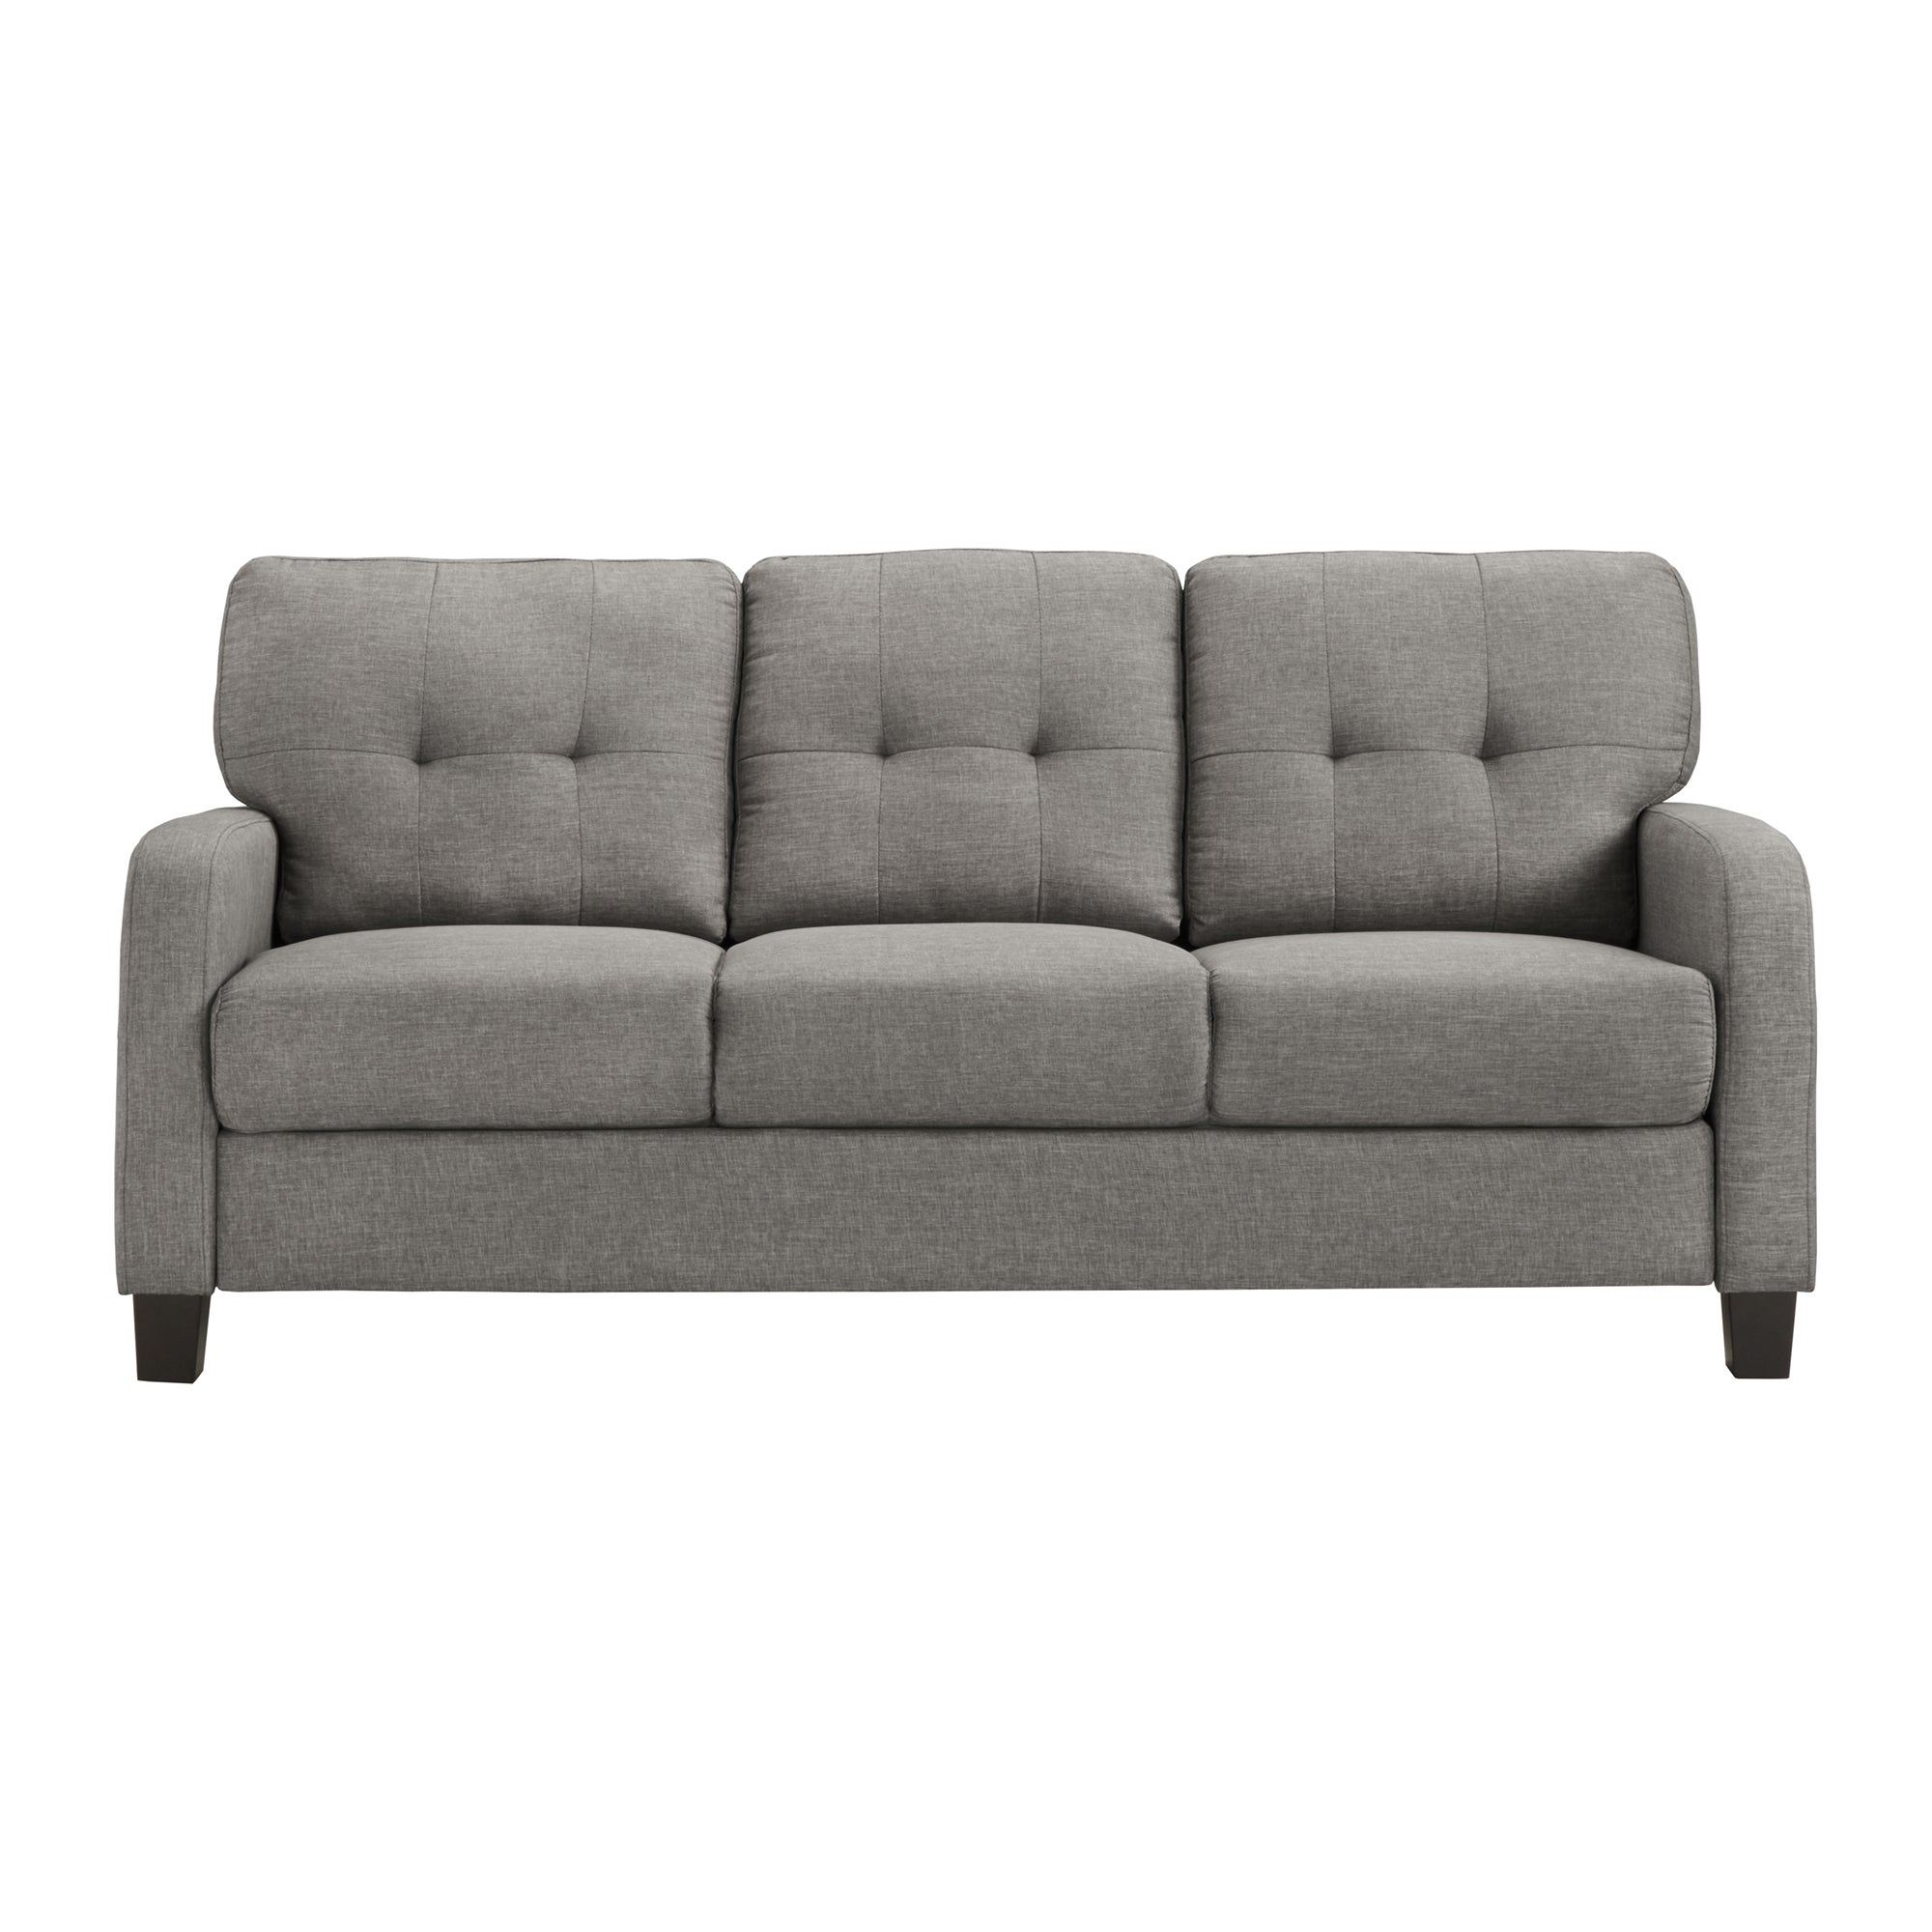 Dillion Urban Track Arm Tufted Sofa By INSPIRE Q Bold   Free Shipping Today    Overstock   17482233